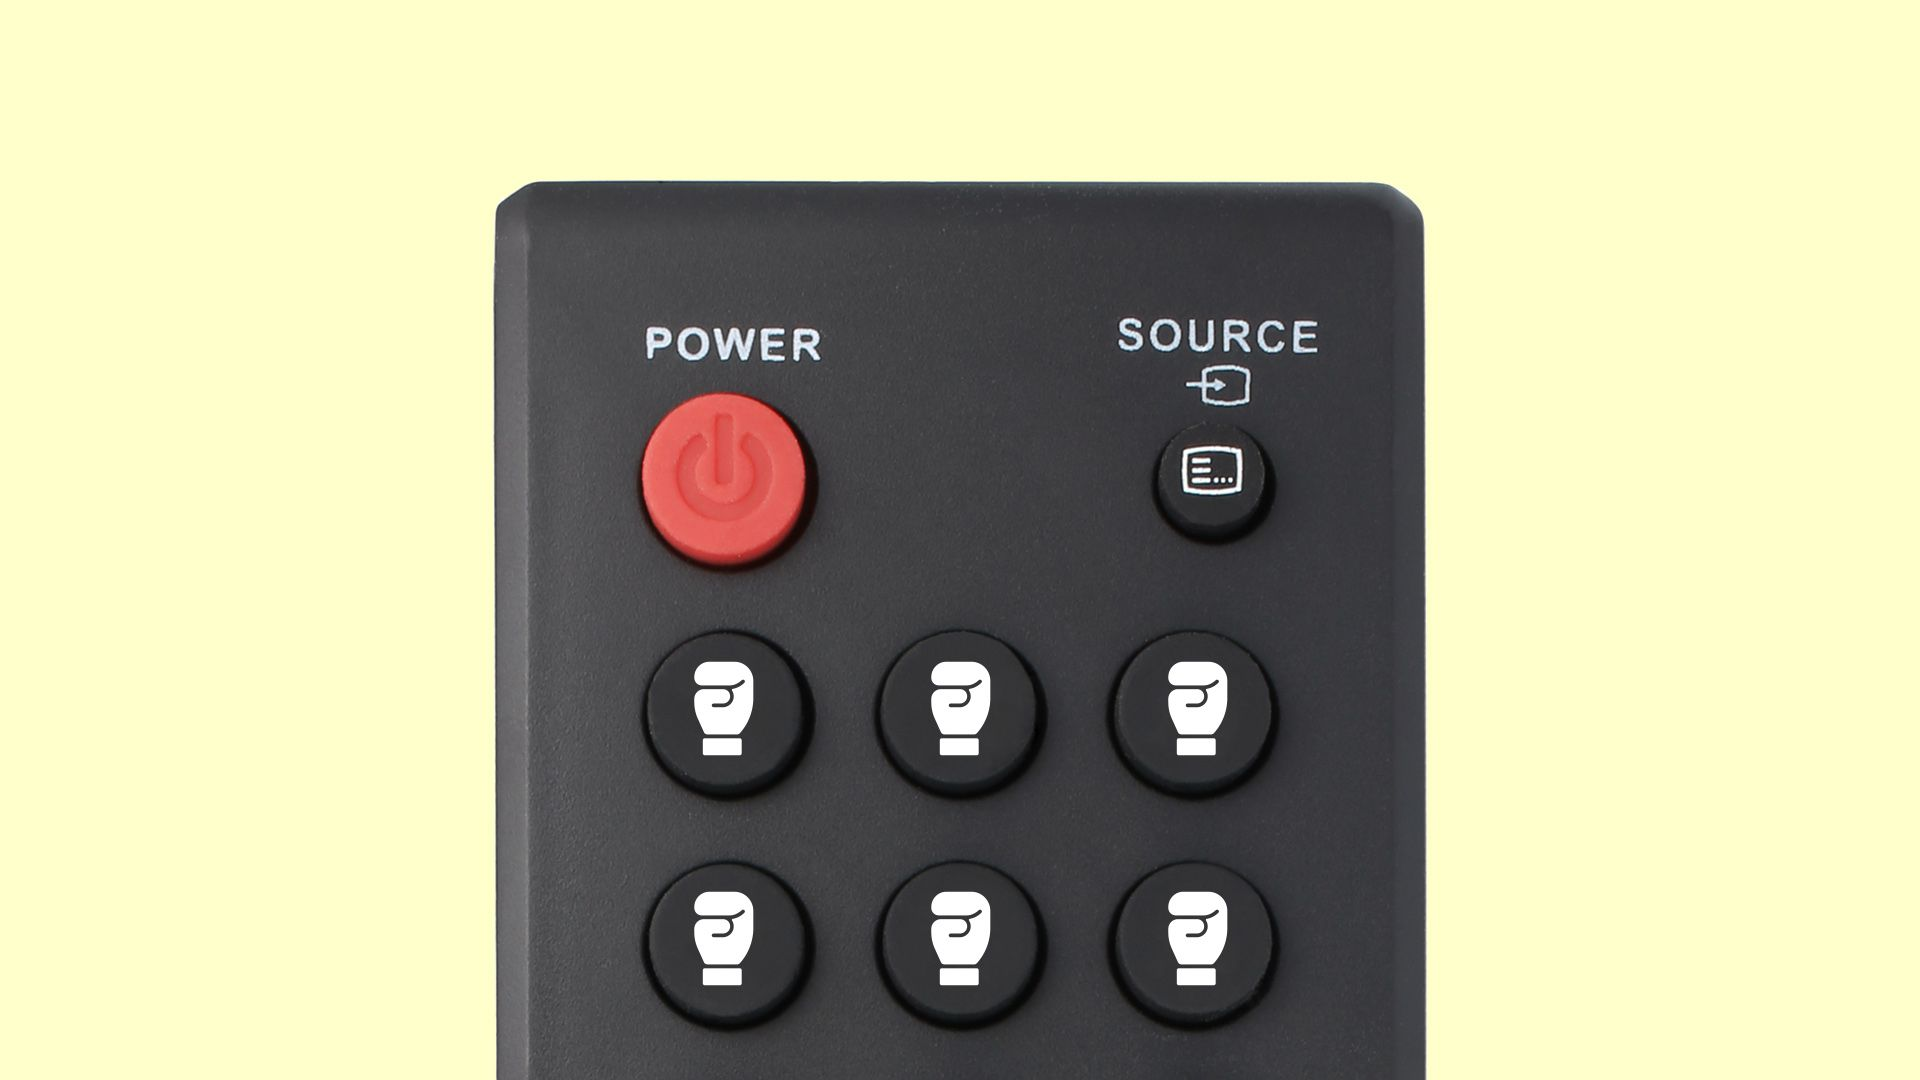 TV remote with buttons replaced by boxing gloves